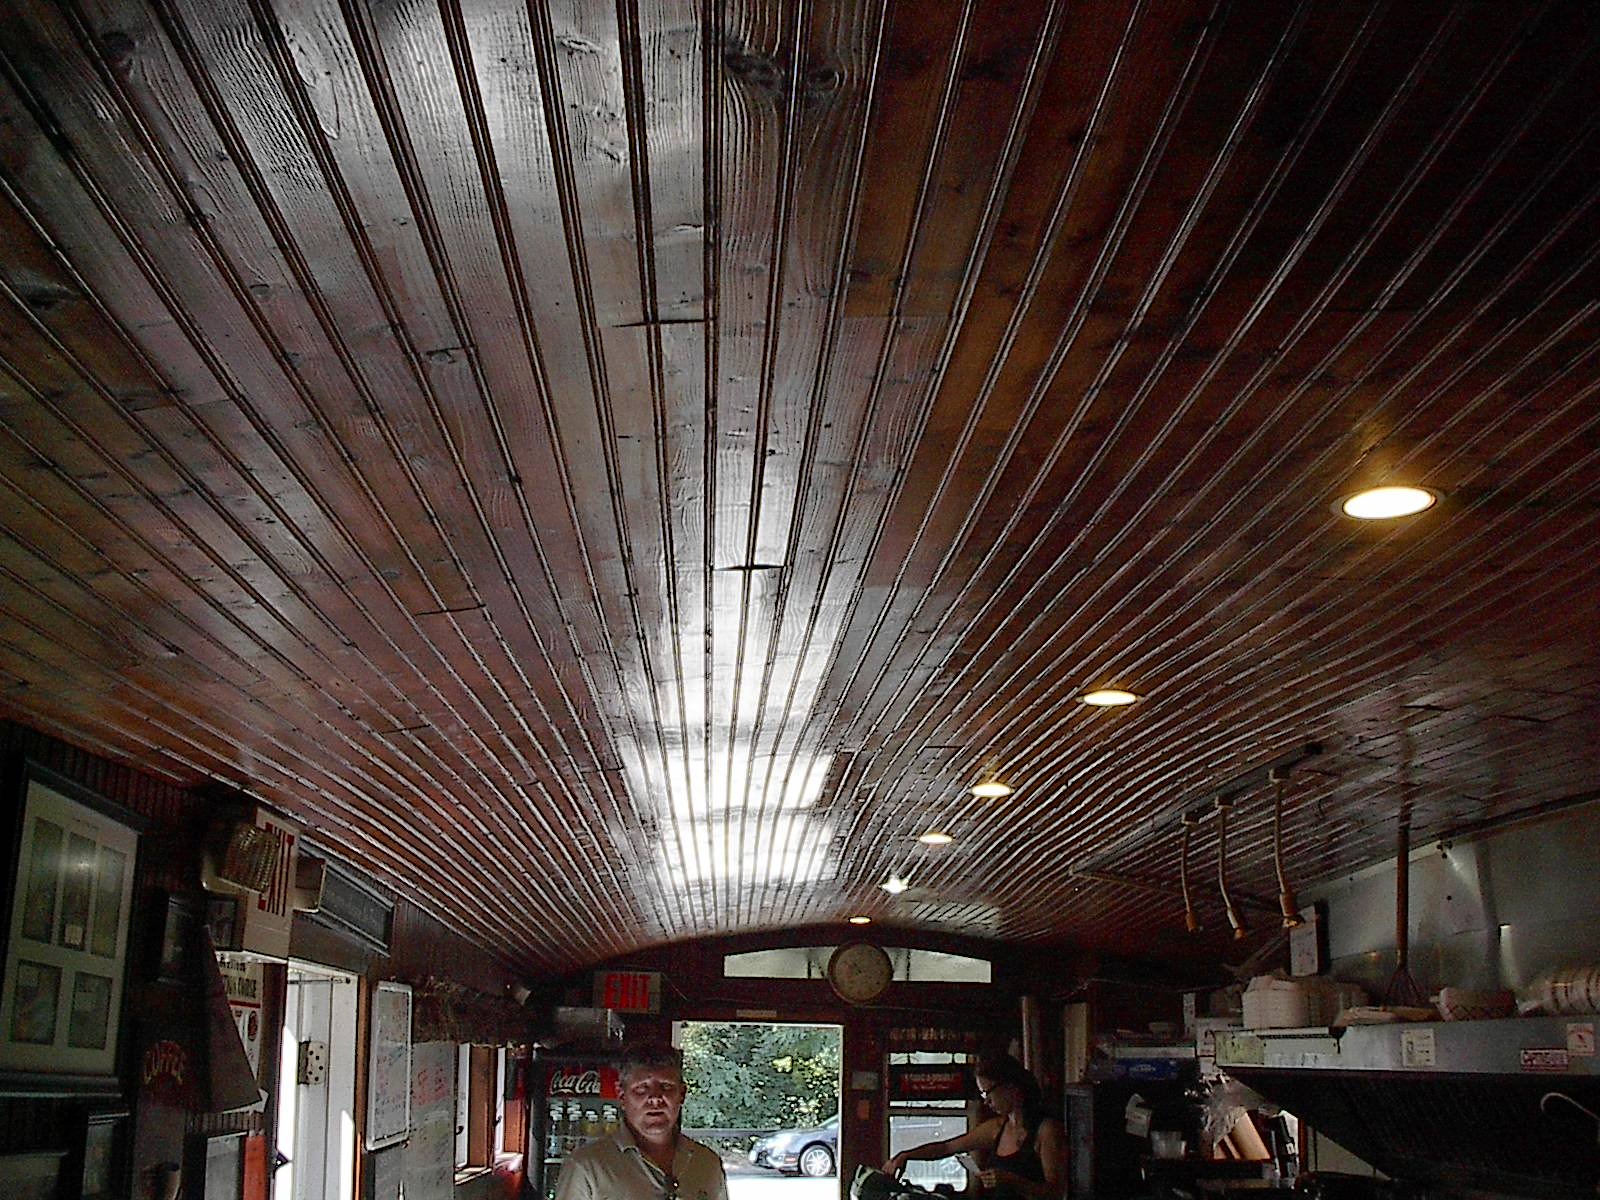 Winsted Diner - This now-old slat ceiling replaced the original braced metal ceiling.